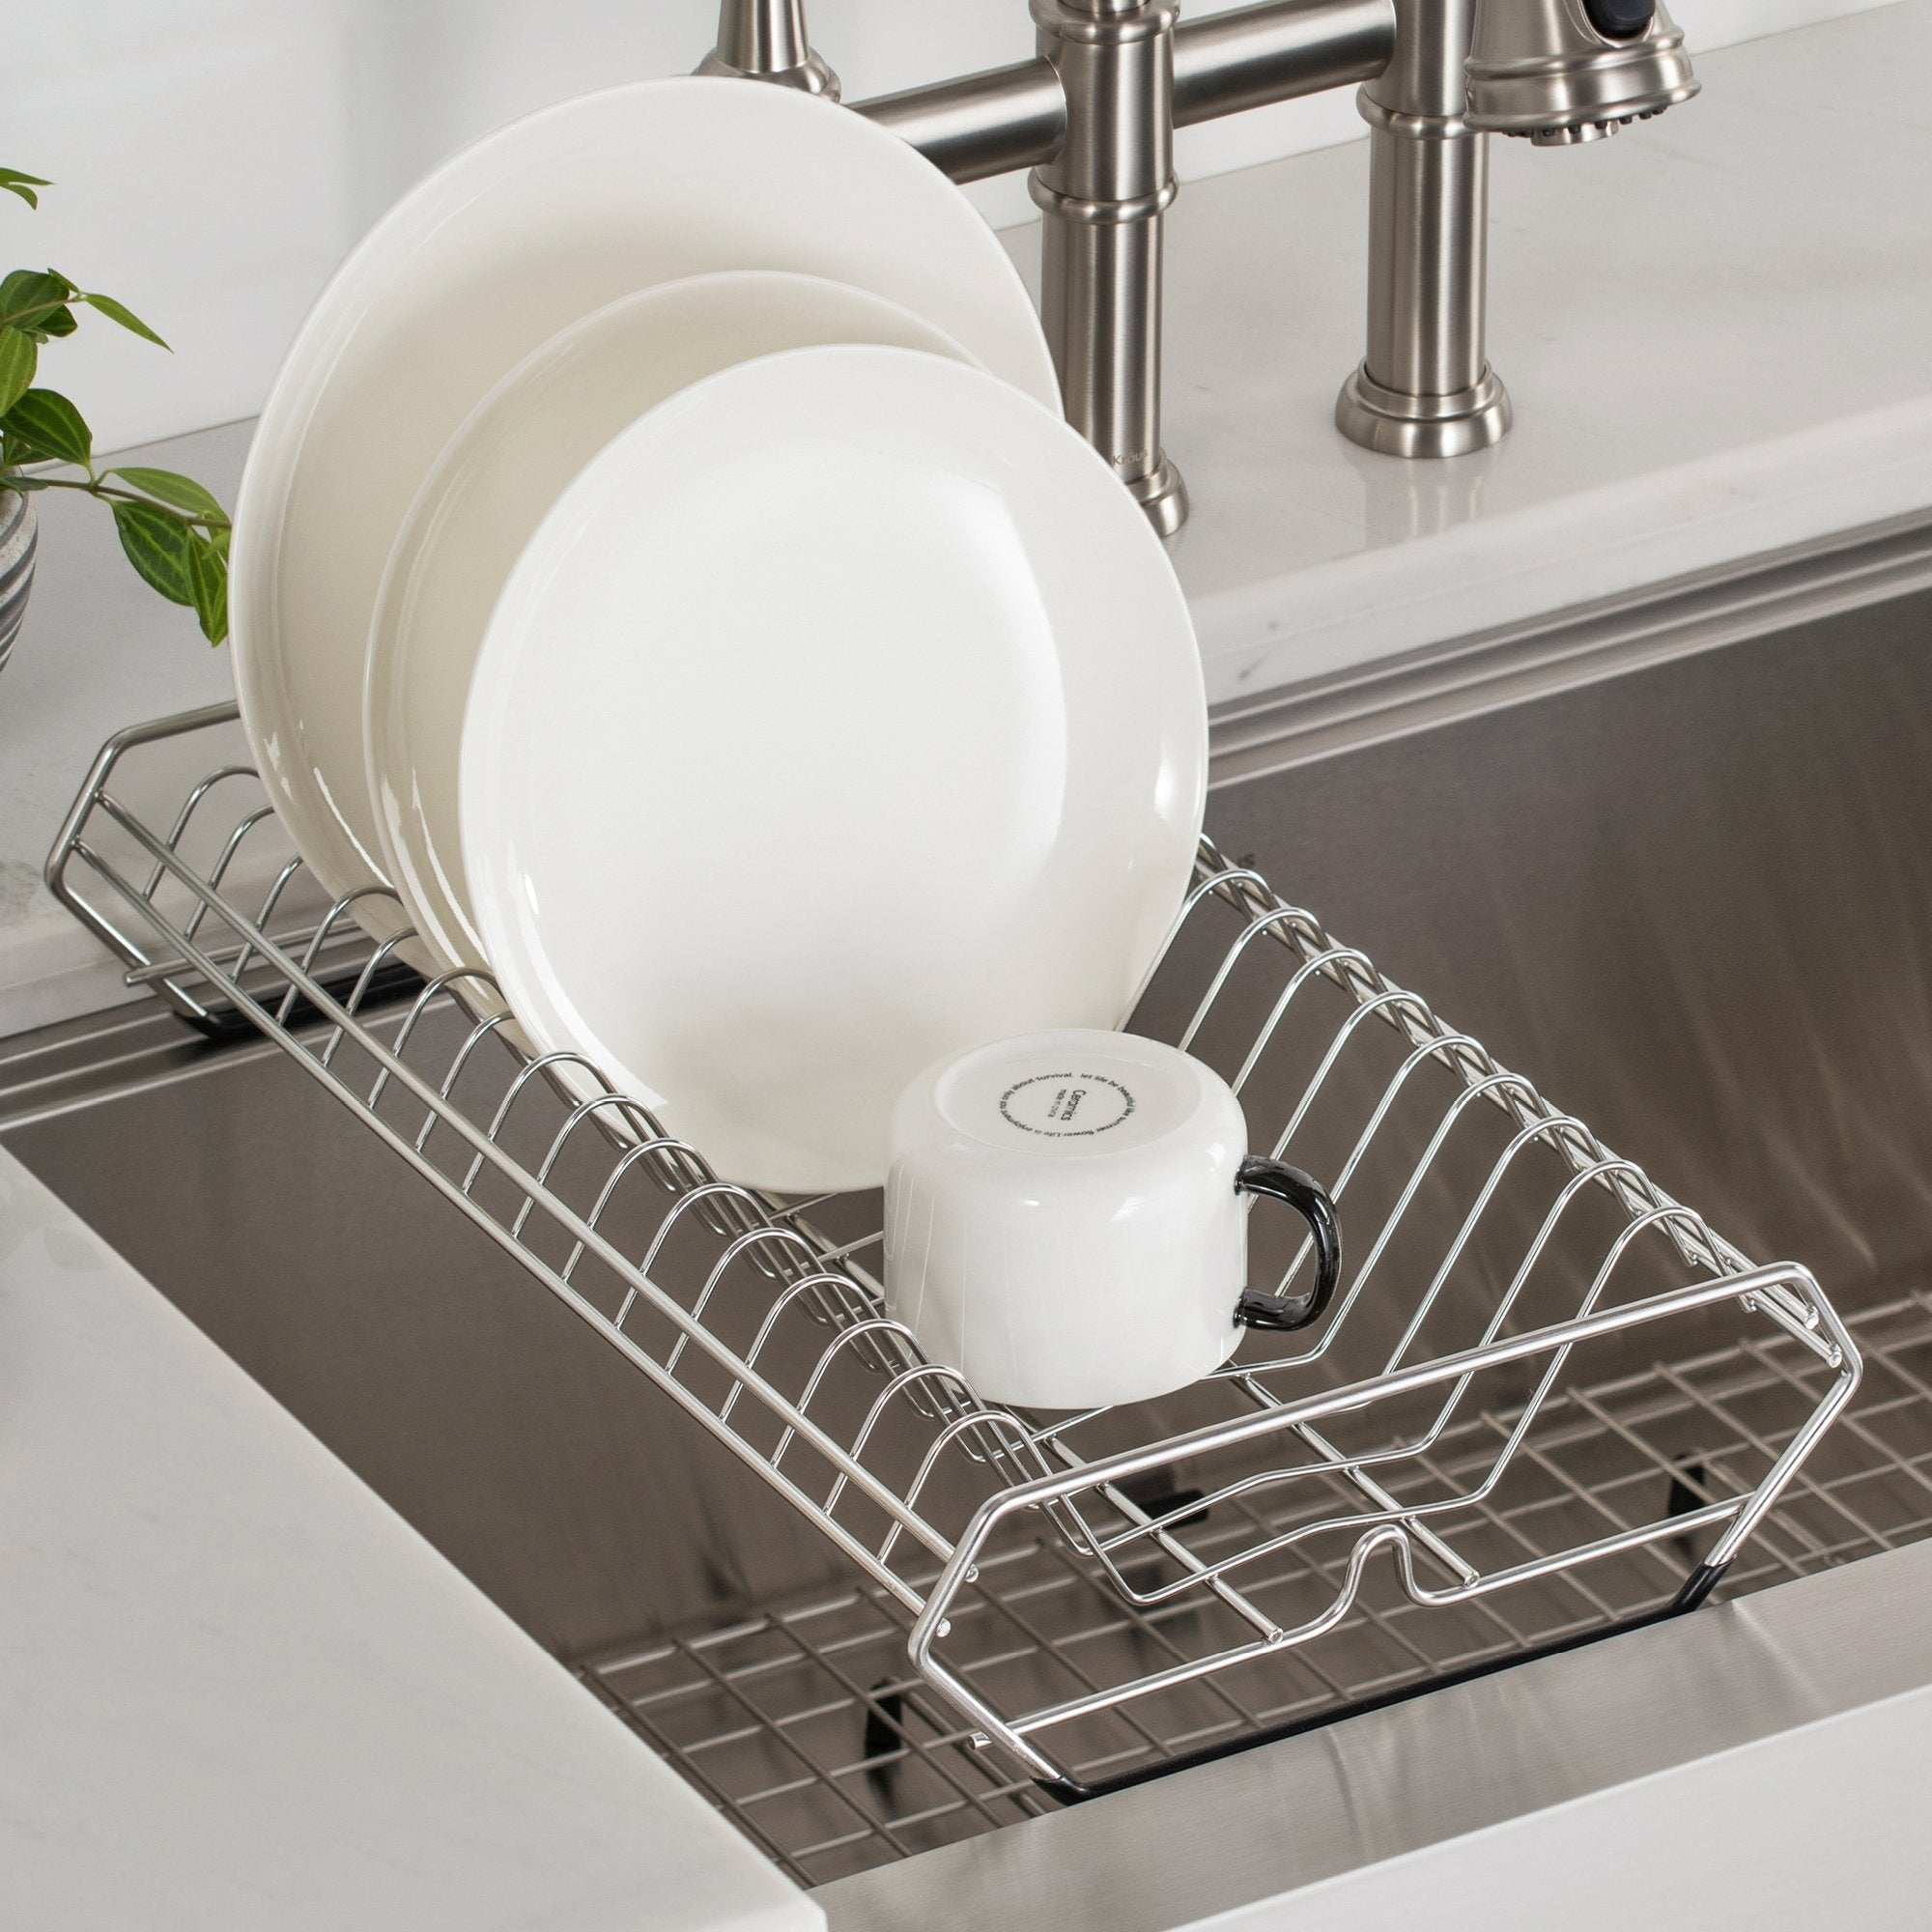 KRAUS Workstation Kitchen Sink Drying Rack in Stainless Steel-DirectSinks